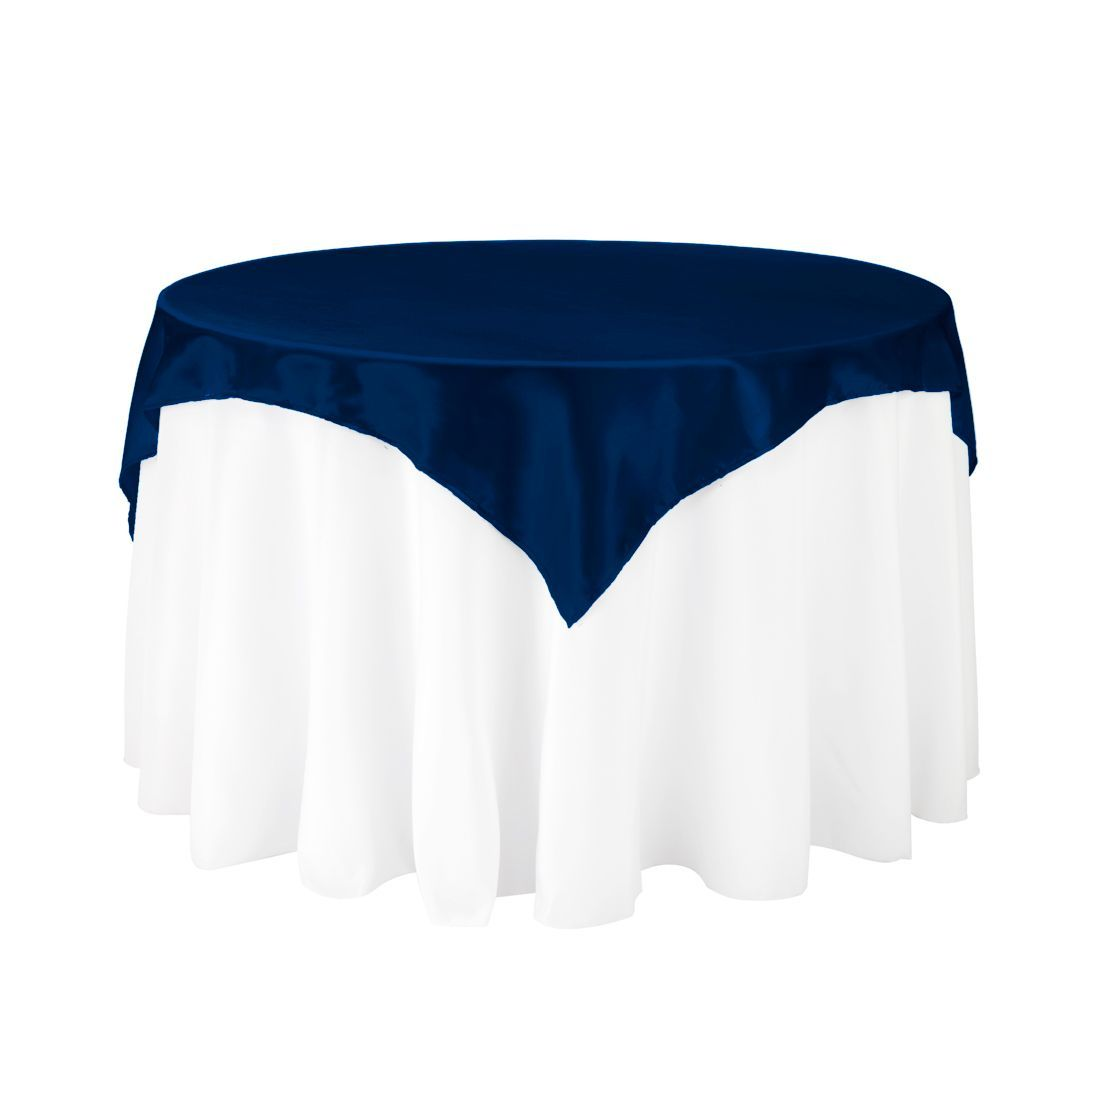 60 In Square Satin Overlay Navy Blue Table Overlays Table